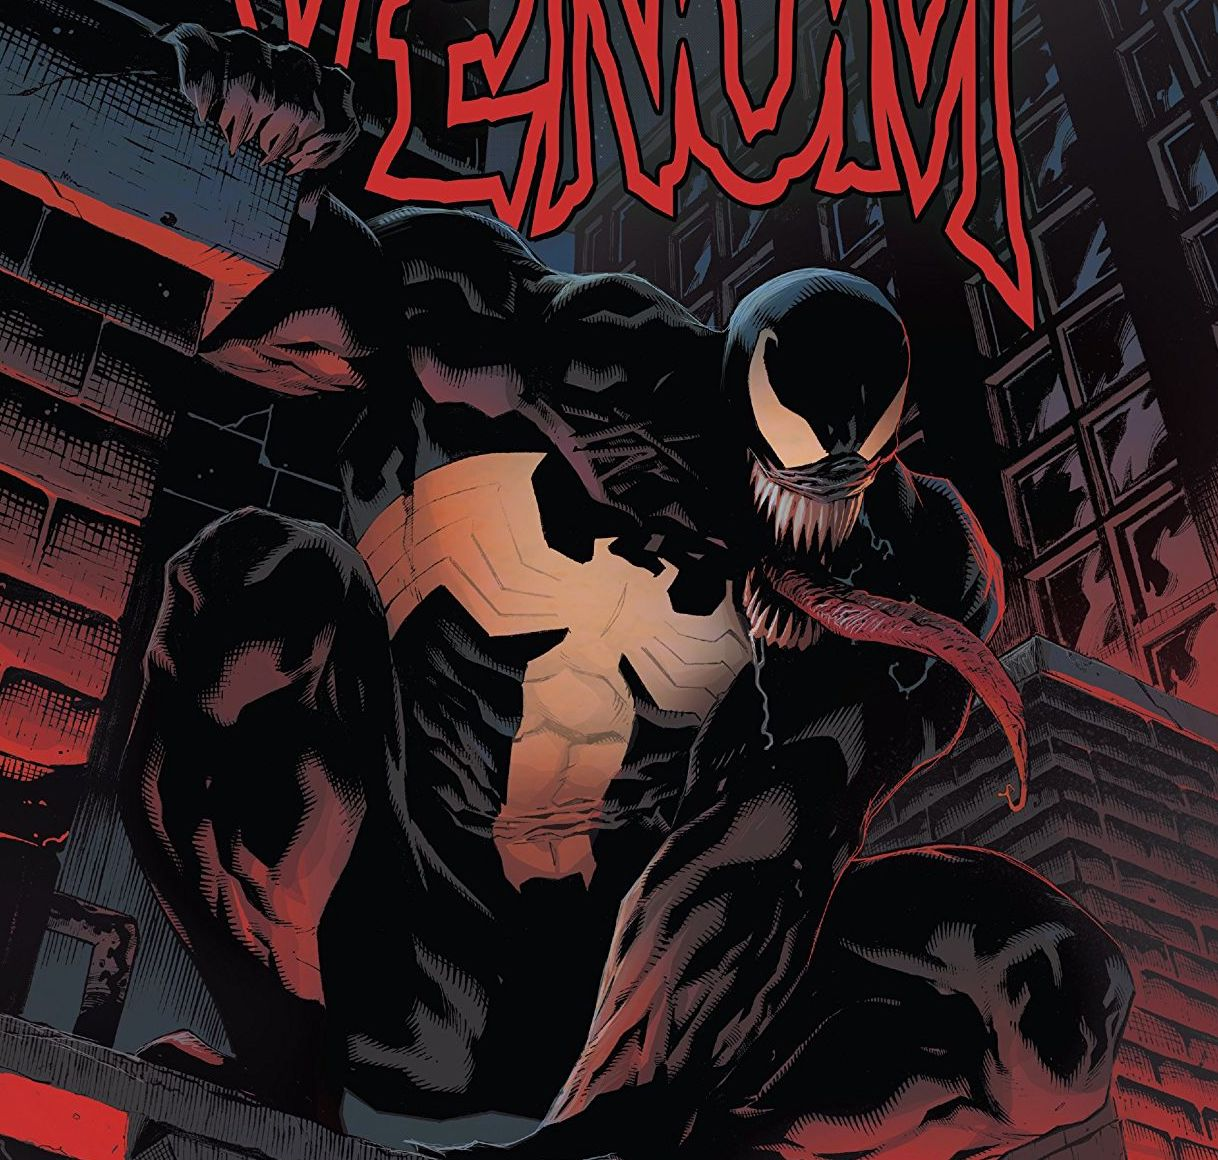 The Symbiote reveals a life changing secret to Eddie Brock in Venom #11